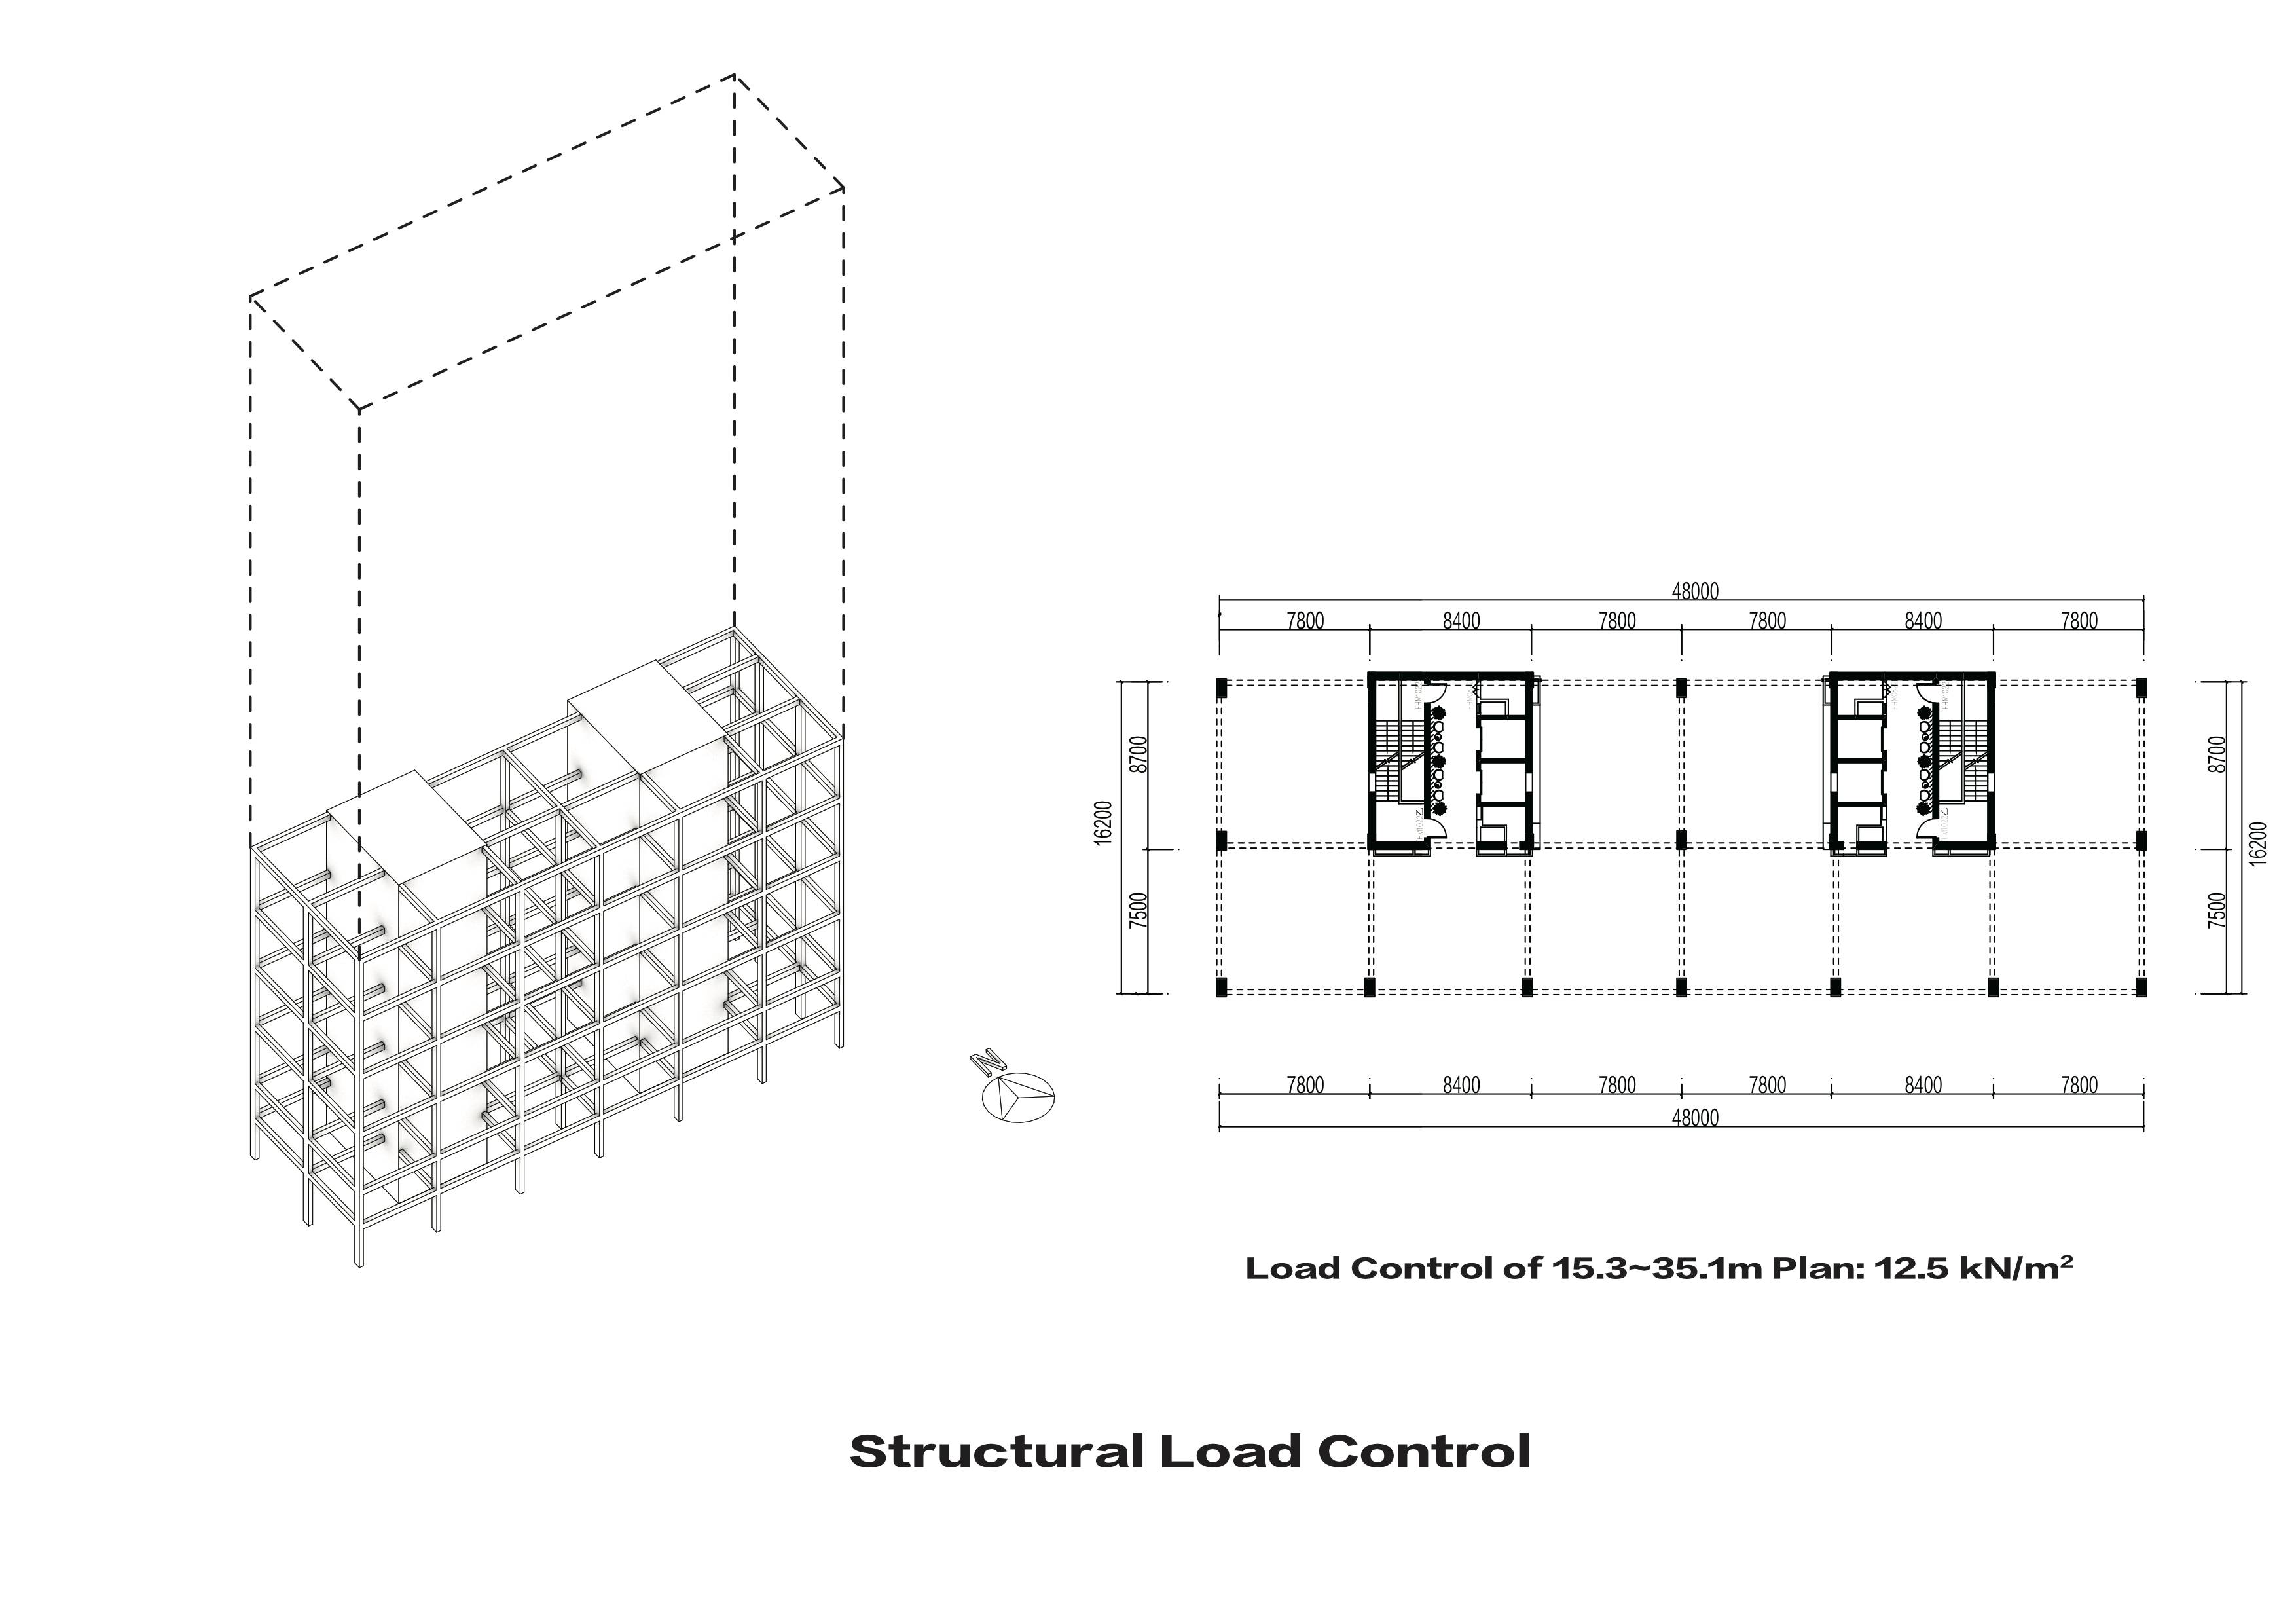 P8: Structural Load Control